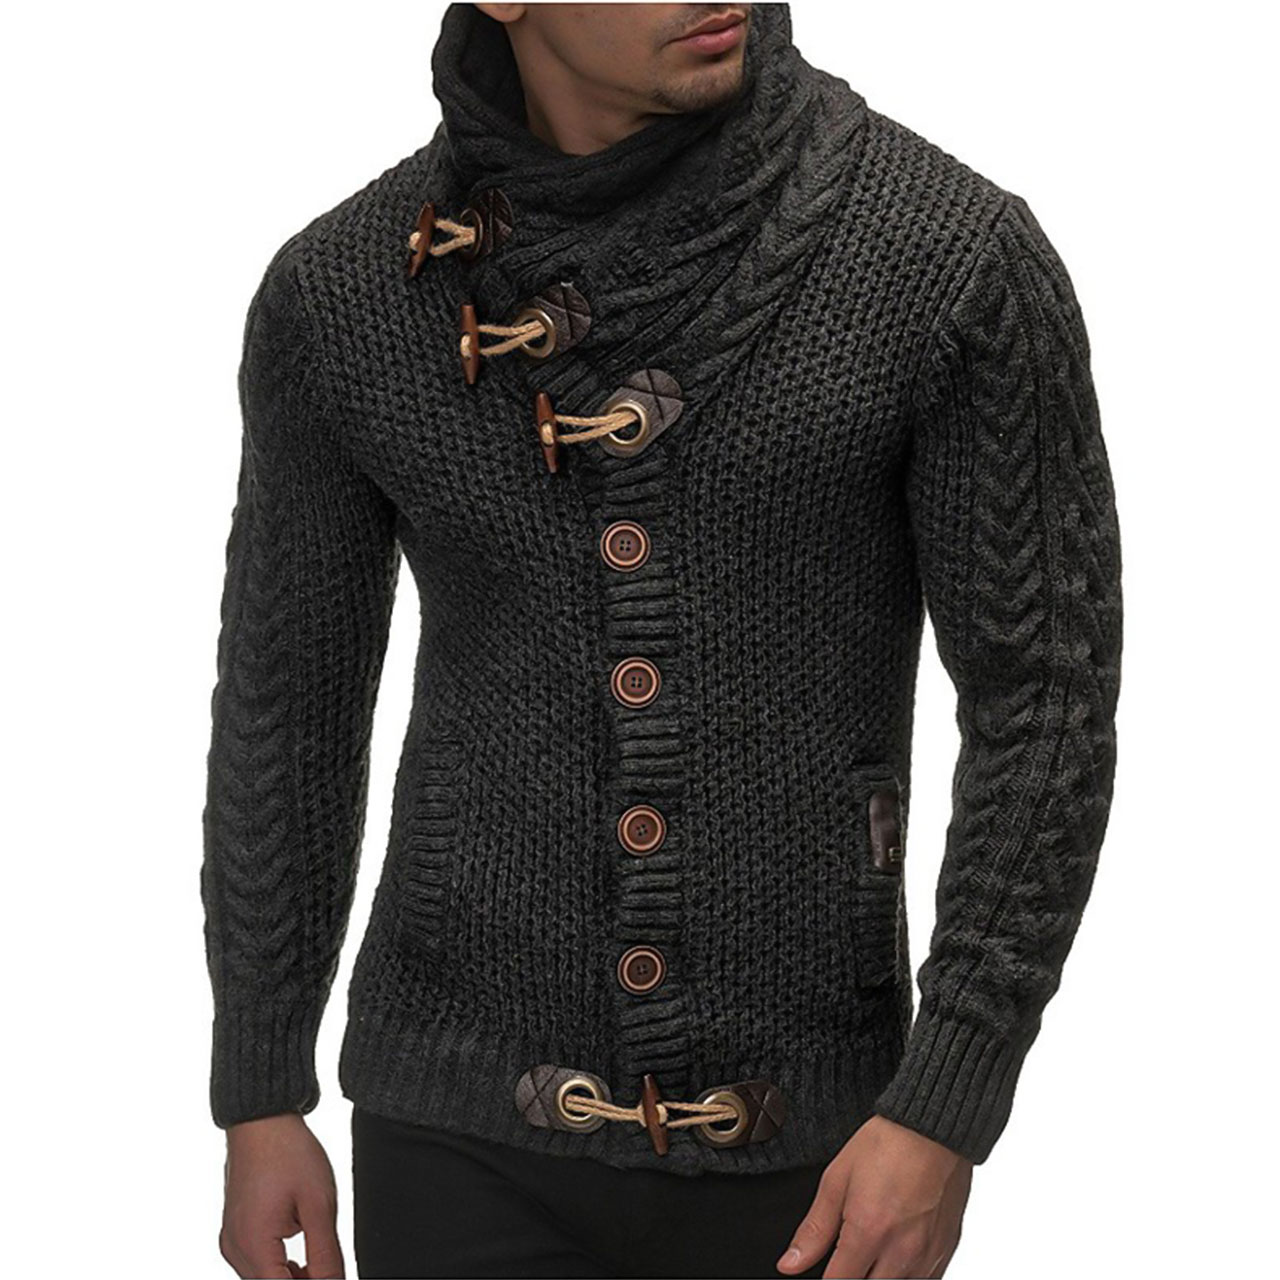 Men's Daily / Going out / Weekend Solid Dark Gray Colored Turtleneck Long Sleeve Slim Regular Cardigan Sweater Jumper